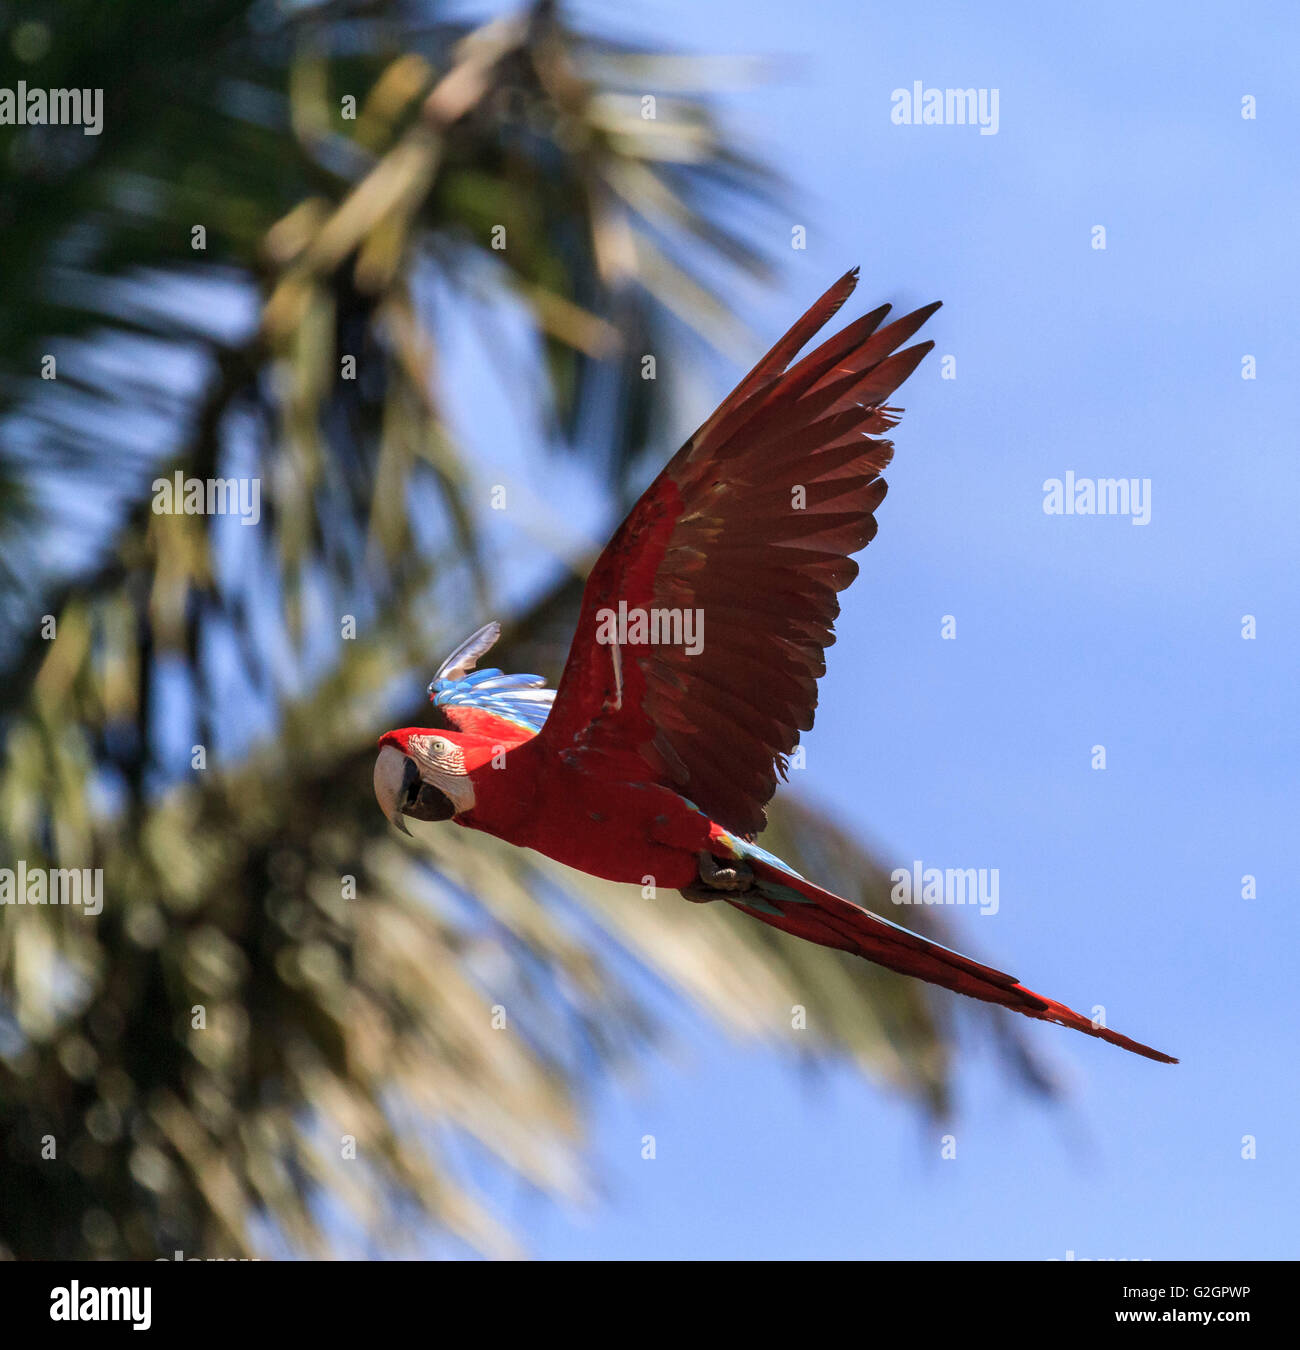 Red and Green Macaw, Manú National Park, Peru - Stock Image